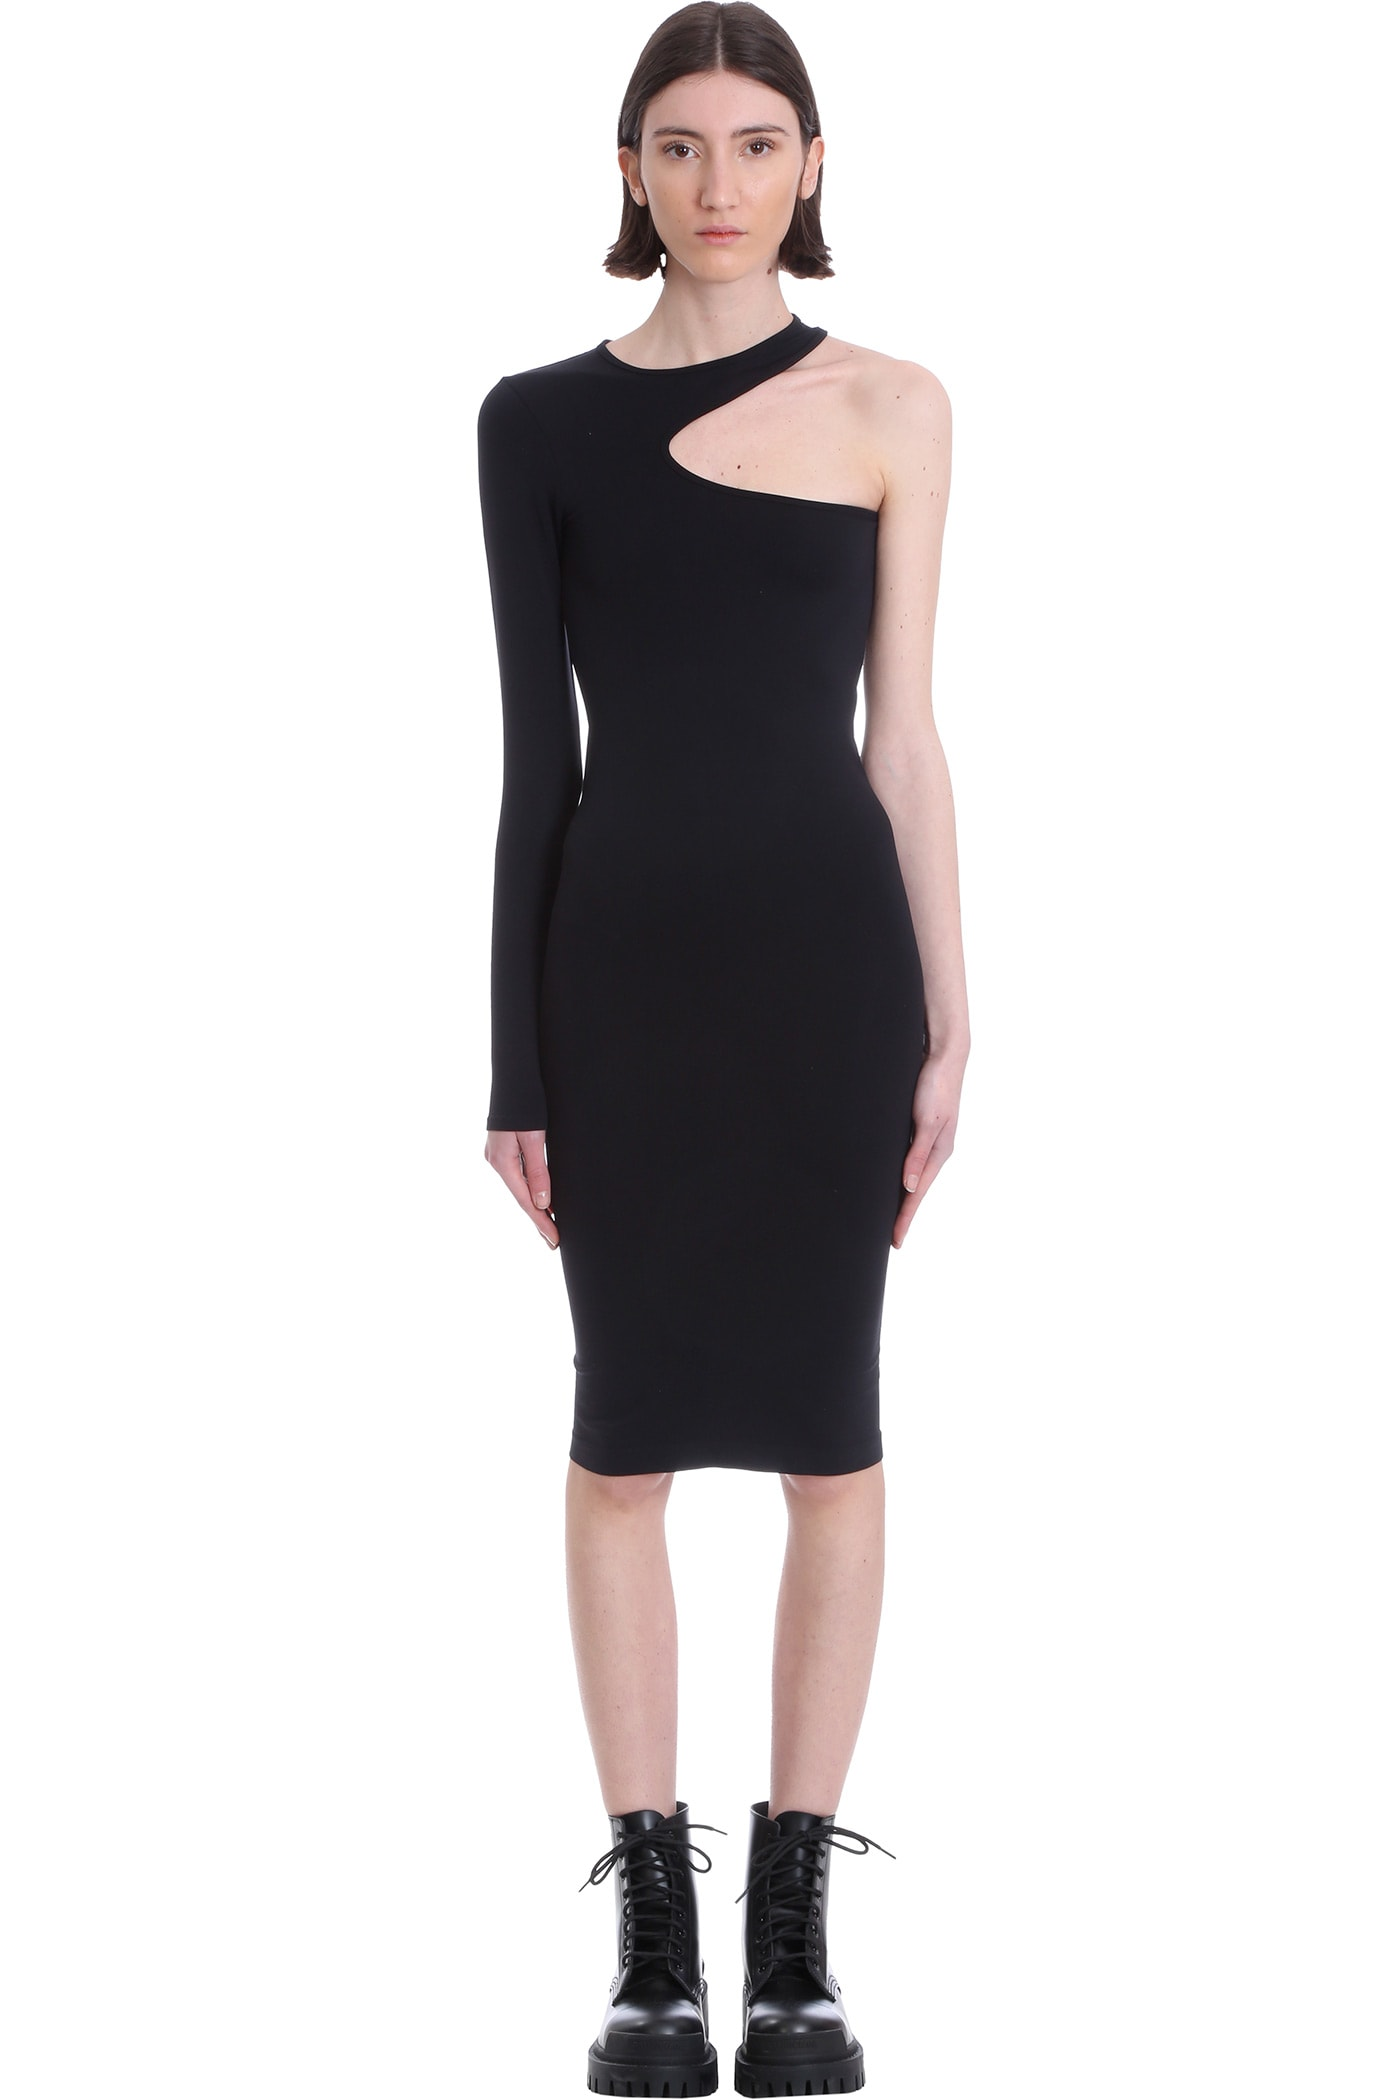 Helmut Lang Dress In Black Nylon